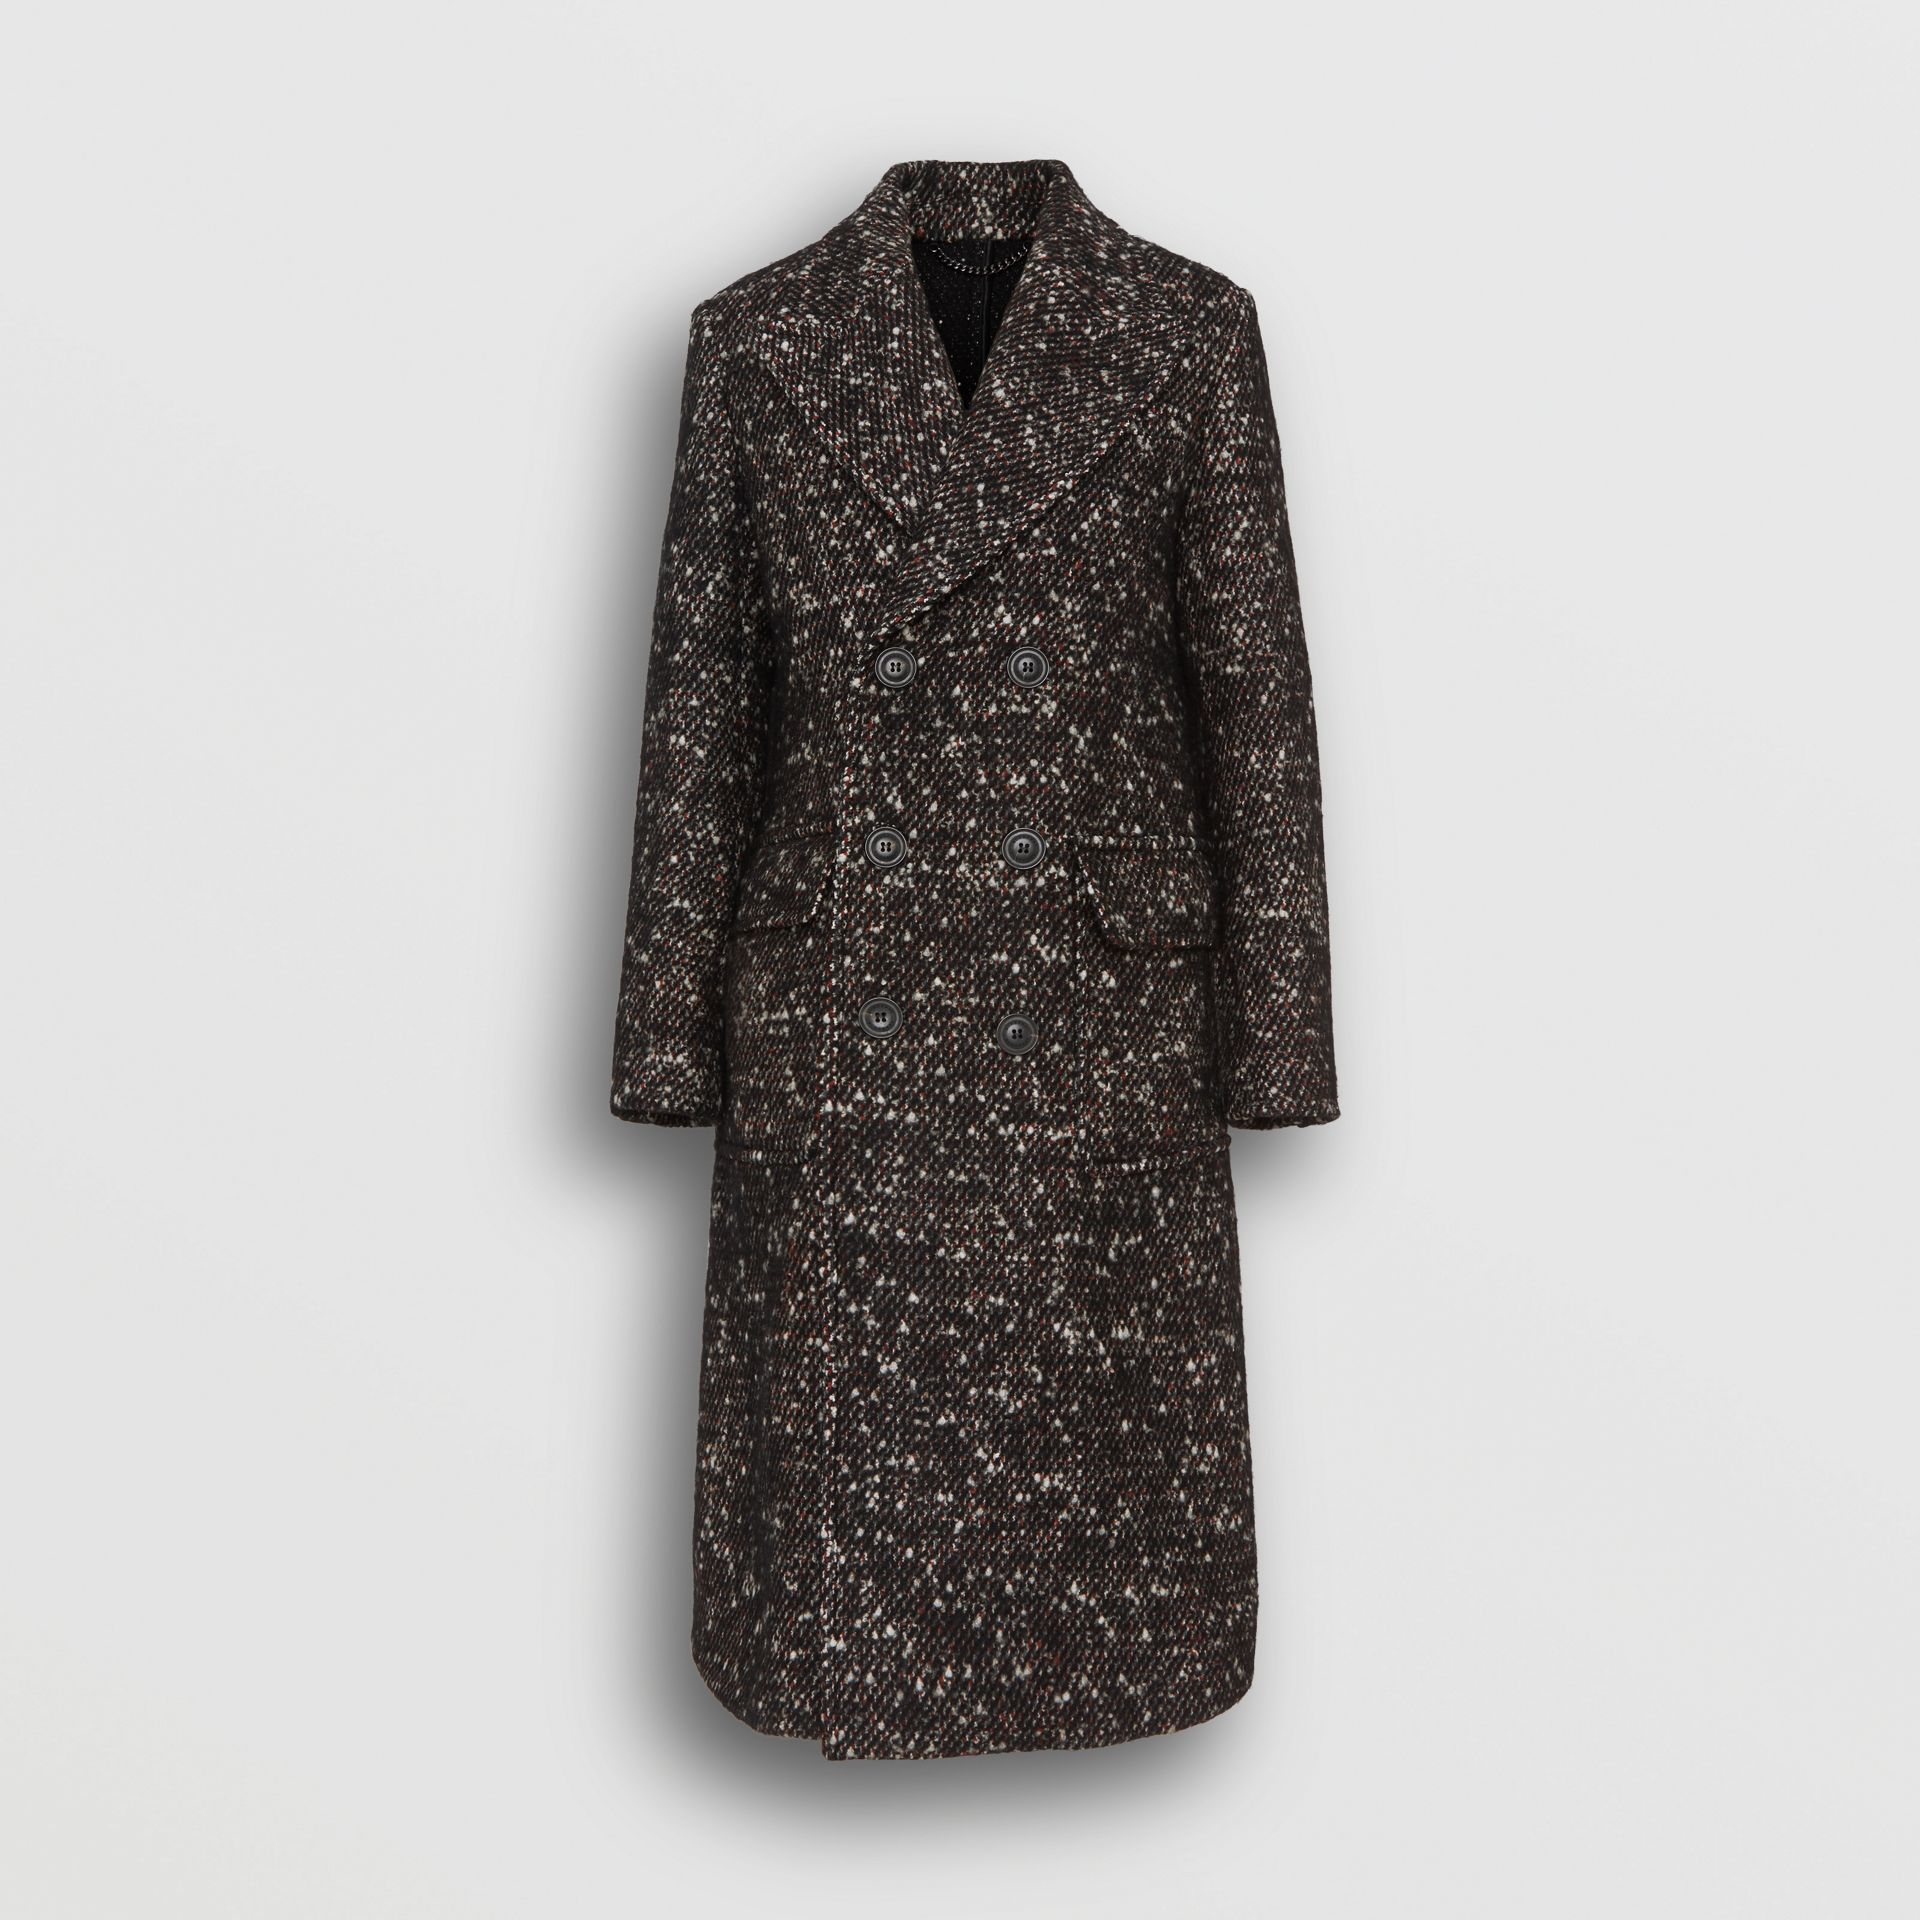 Wool Mohair Blend Tweed Tailored Coat in Black - Men | Burberry Singapore - gallery image 3